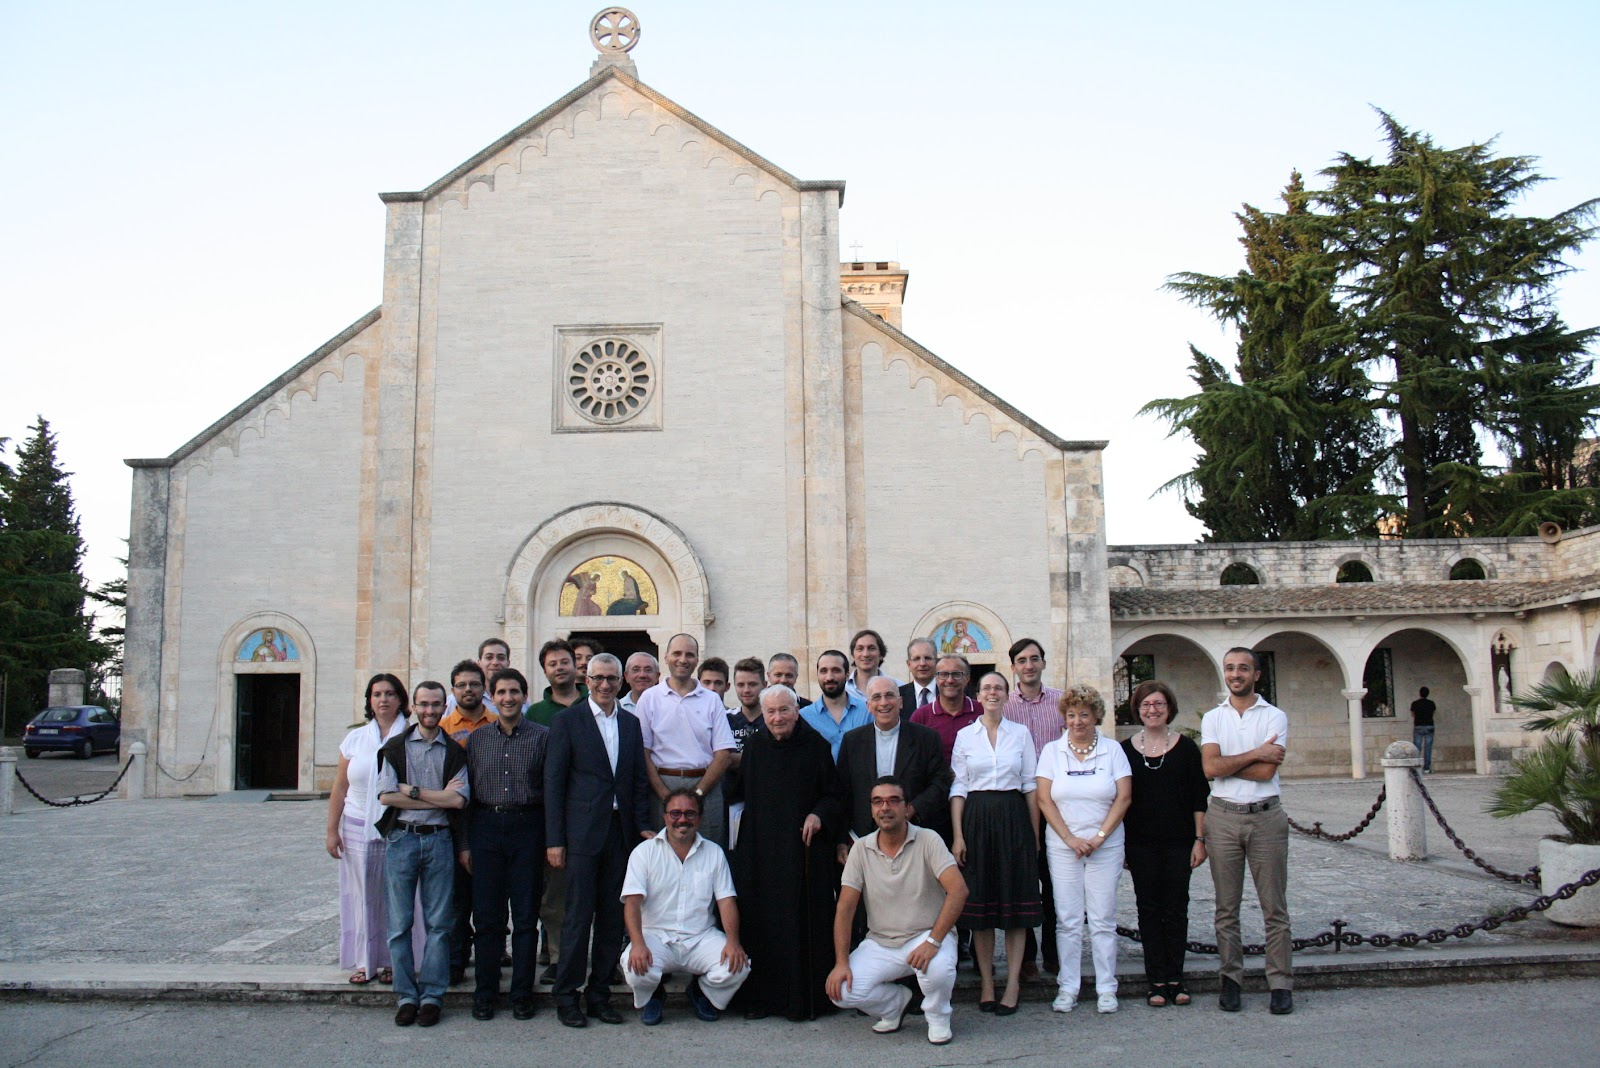 L'atto costitutivo della Scuola Ecclesia Mater